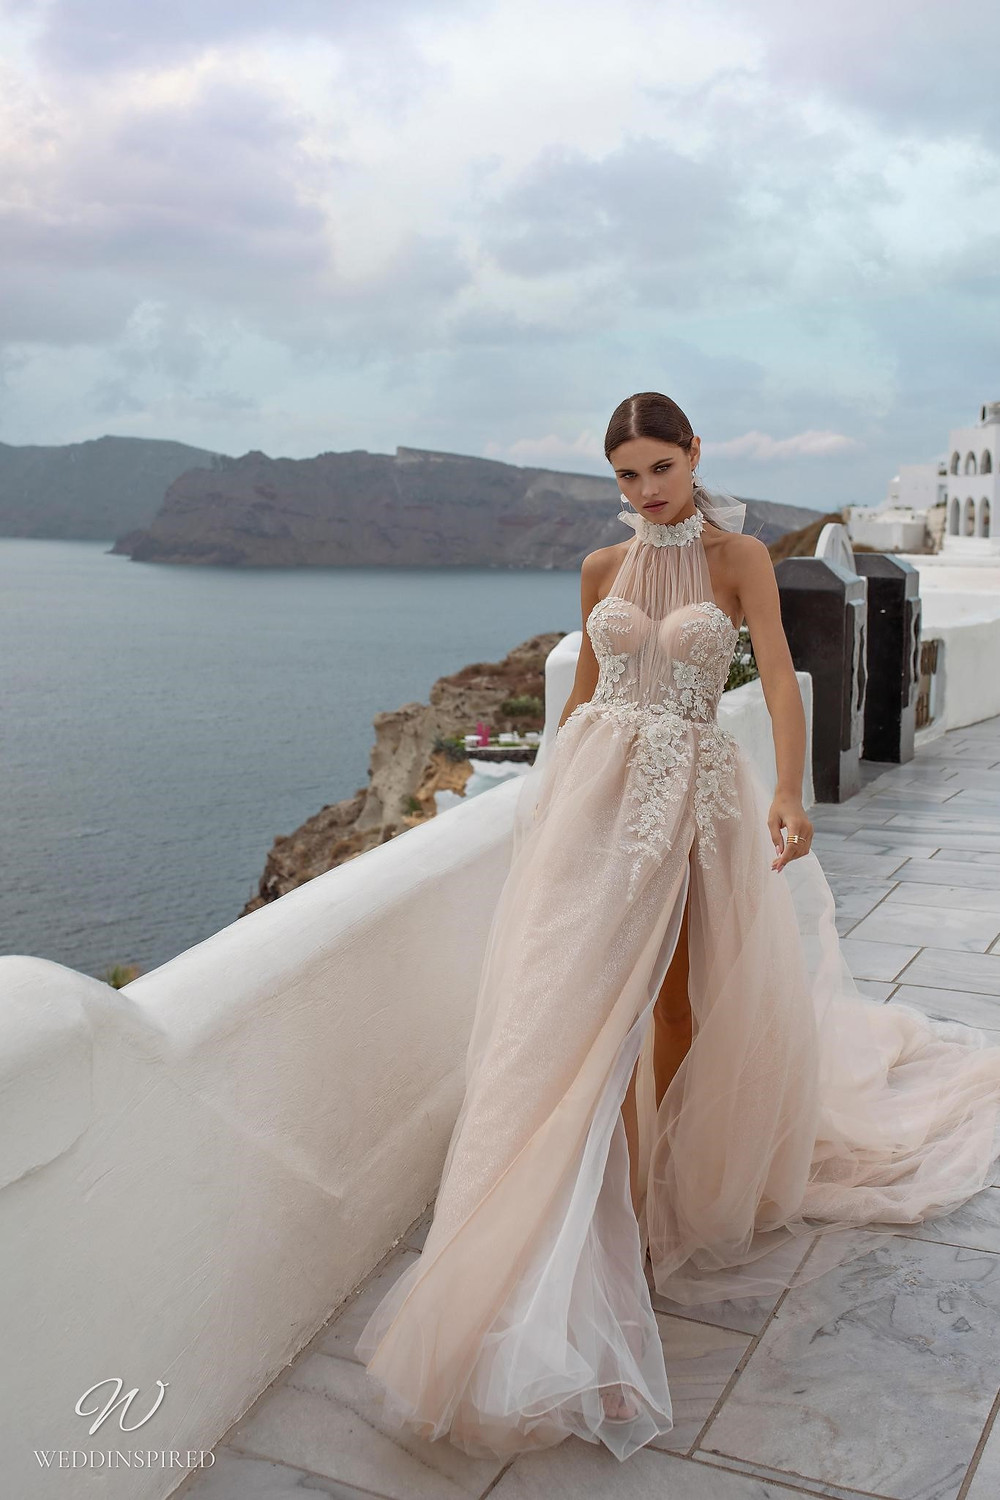 A Ricca Sposa halterneck blush tulle romantic ball gown wedding dress with a sweetheart neckline